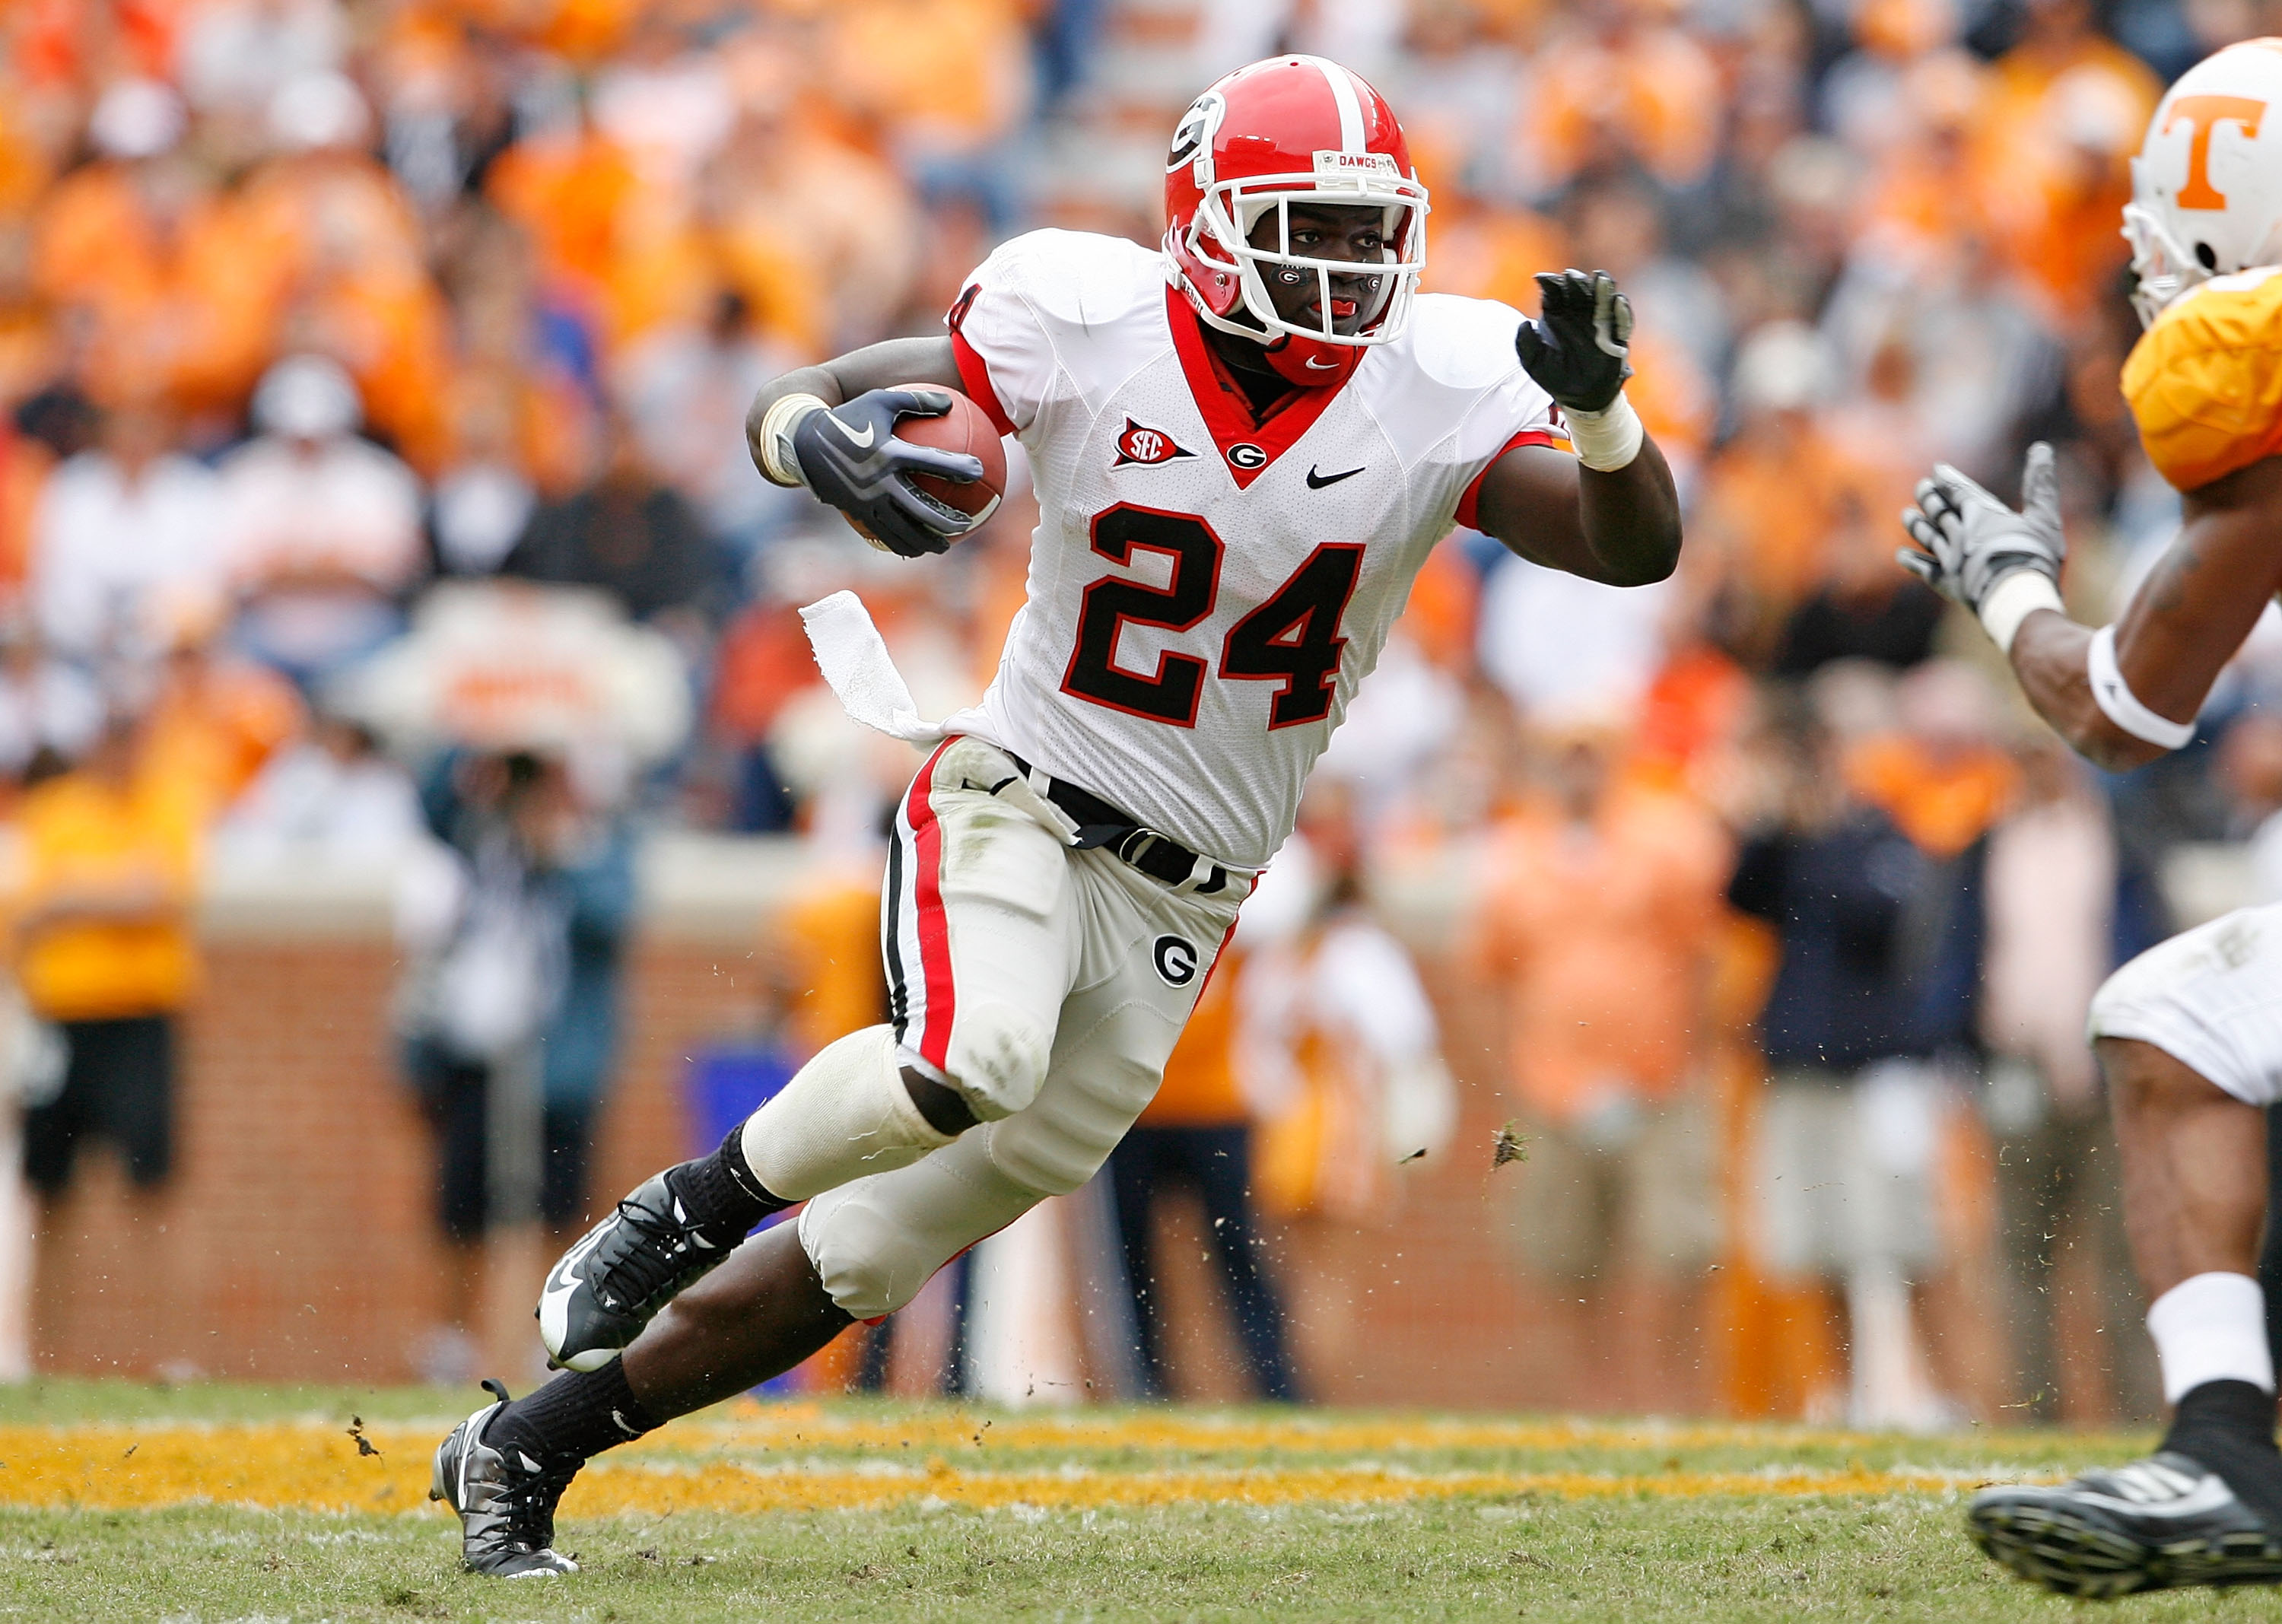 KNOXVILLE, TN - OCTOBER 10: Washaun Ealey #24 of the Georgia Bulldogs runs with the ball during the SEC game against the Tennessee Volunteers at Neyland Stadium on October 10, 2009 in Knoxville, Tennessee. (Photo by Andy Lyons/Getty Images)